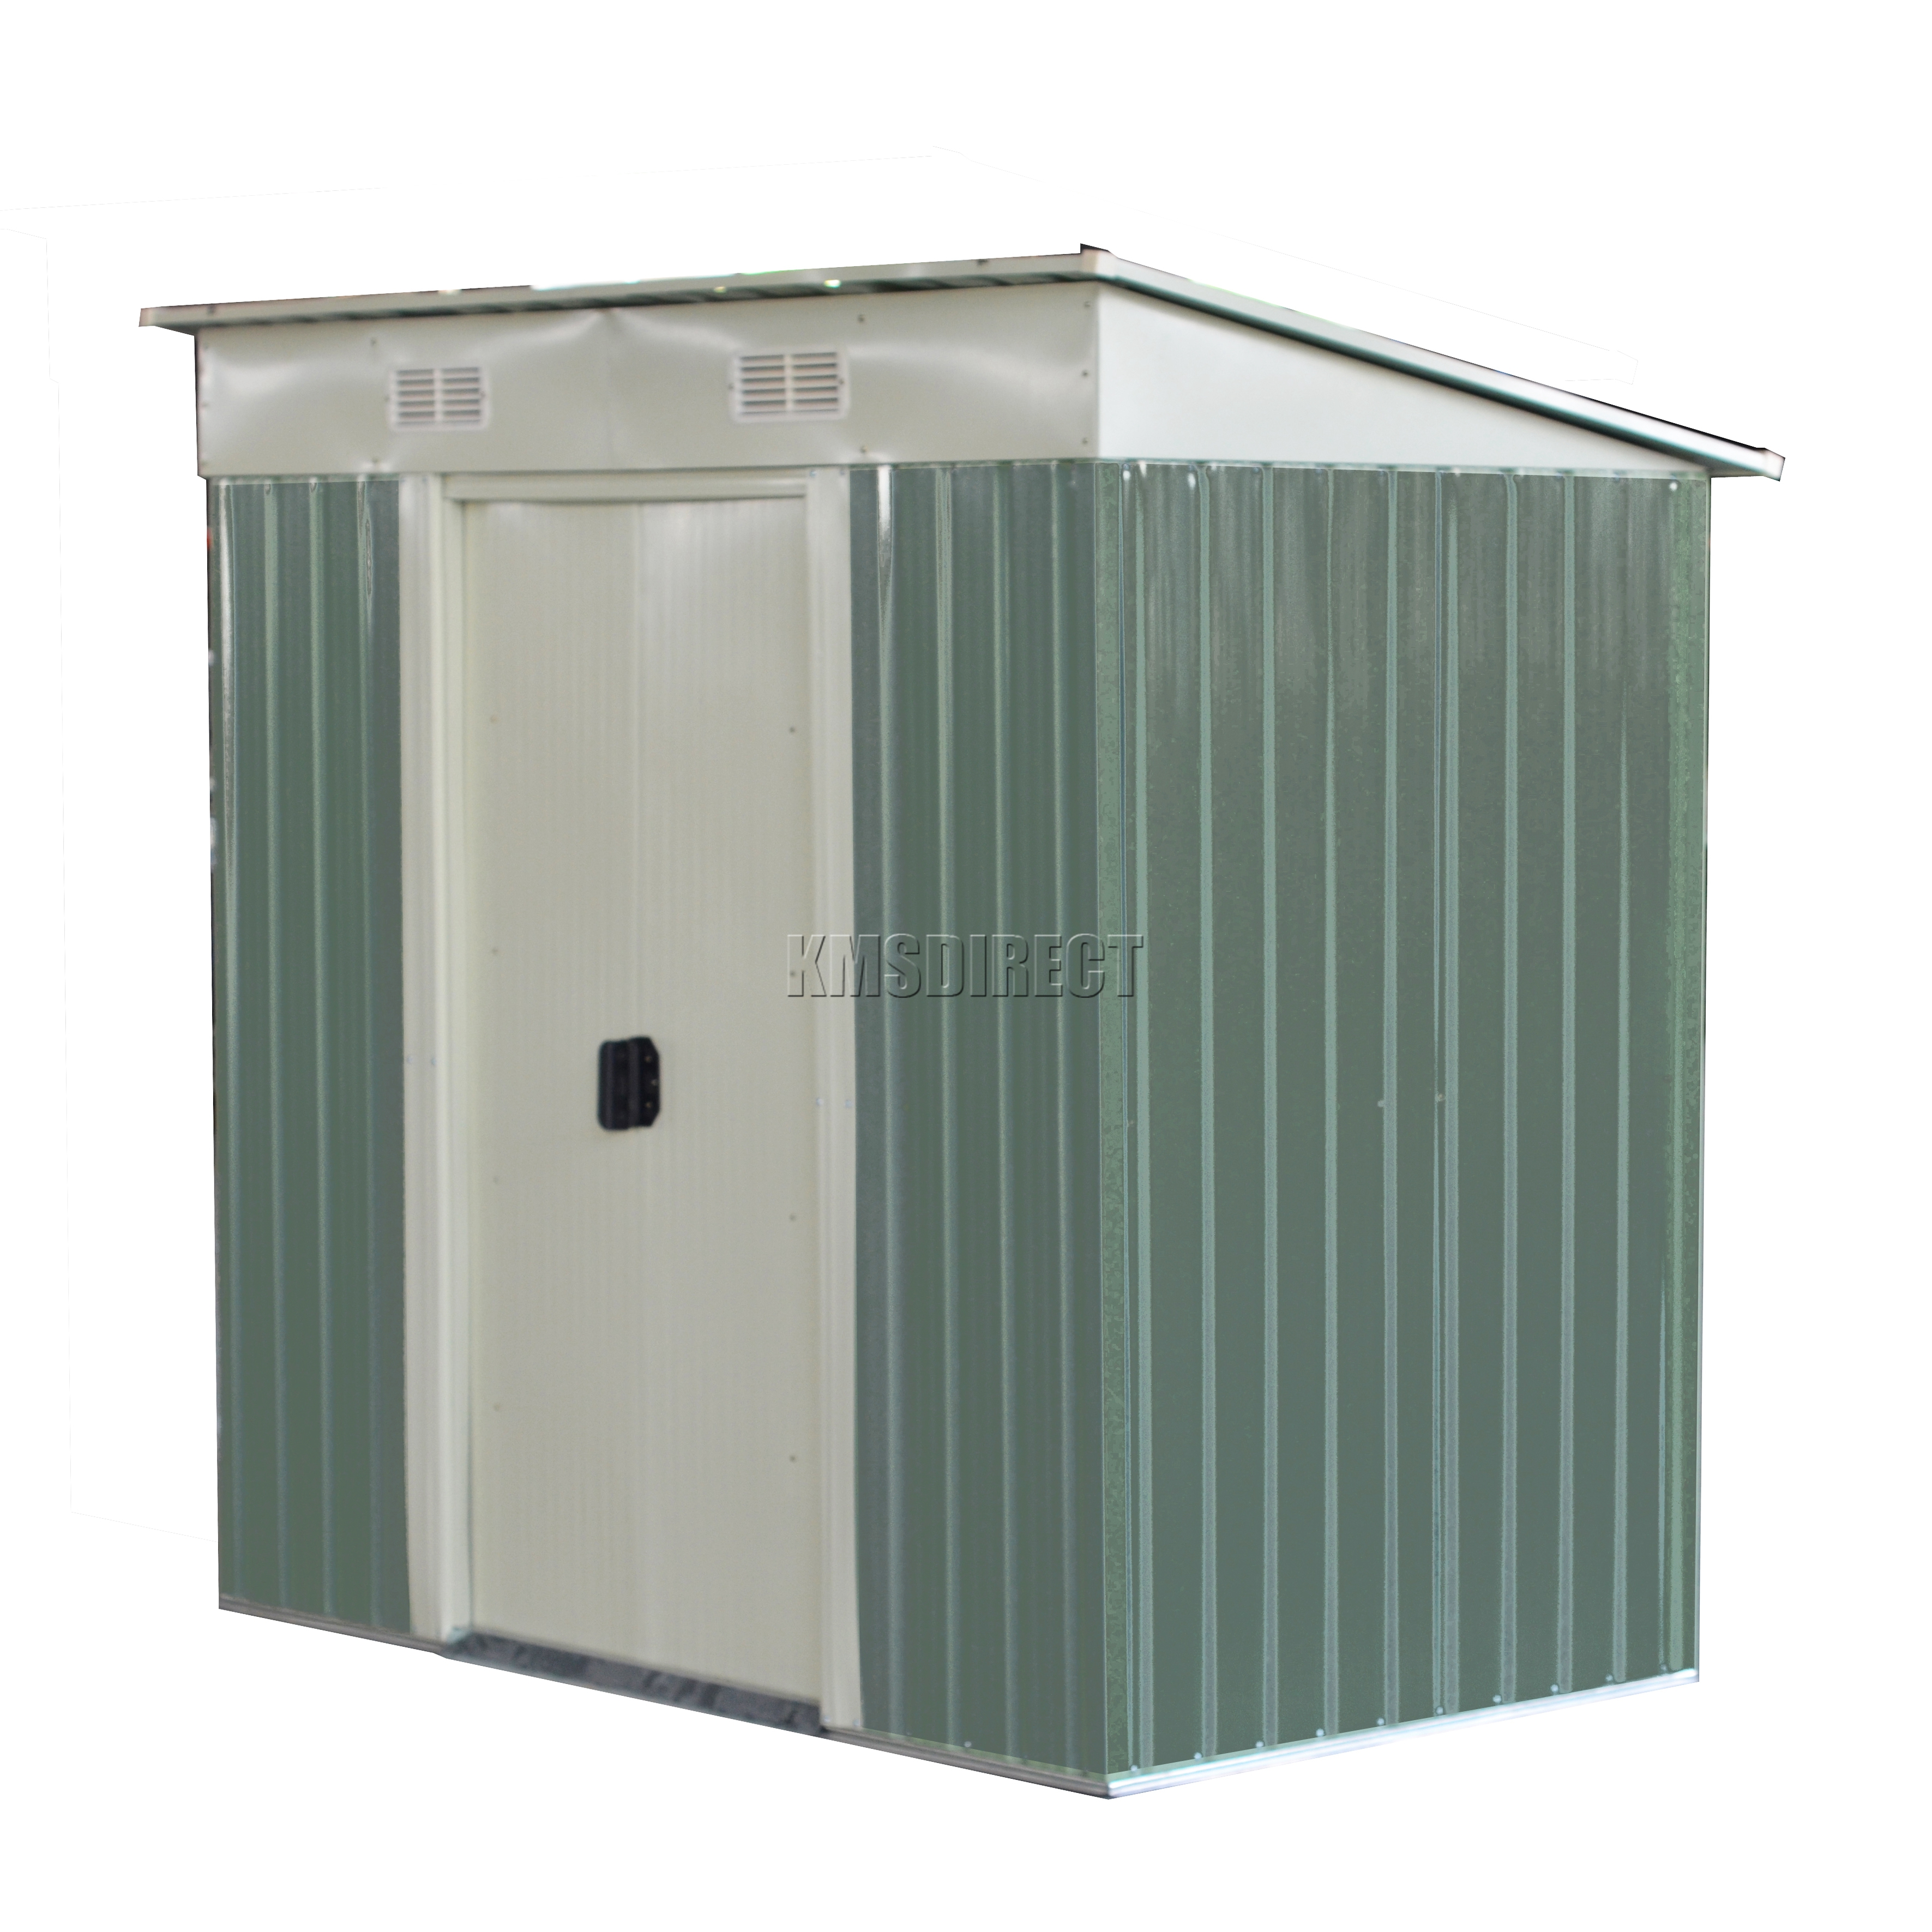 FoxHunter Light Green Garden Shed Pent Roof 4 X 8FT Outdoor Storage Foundatio